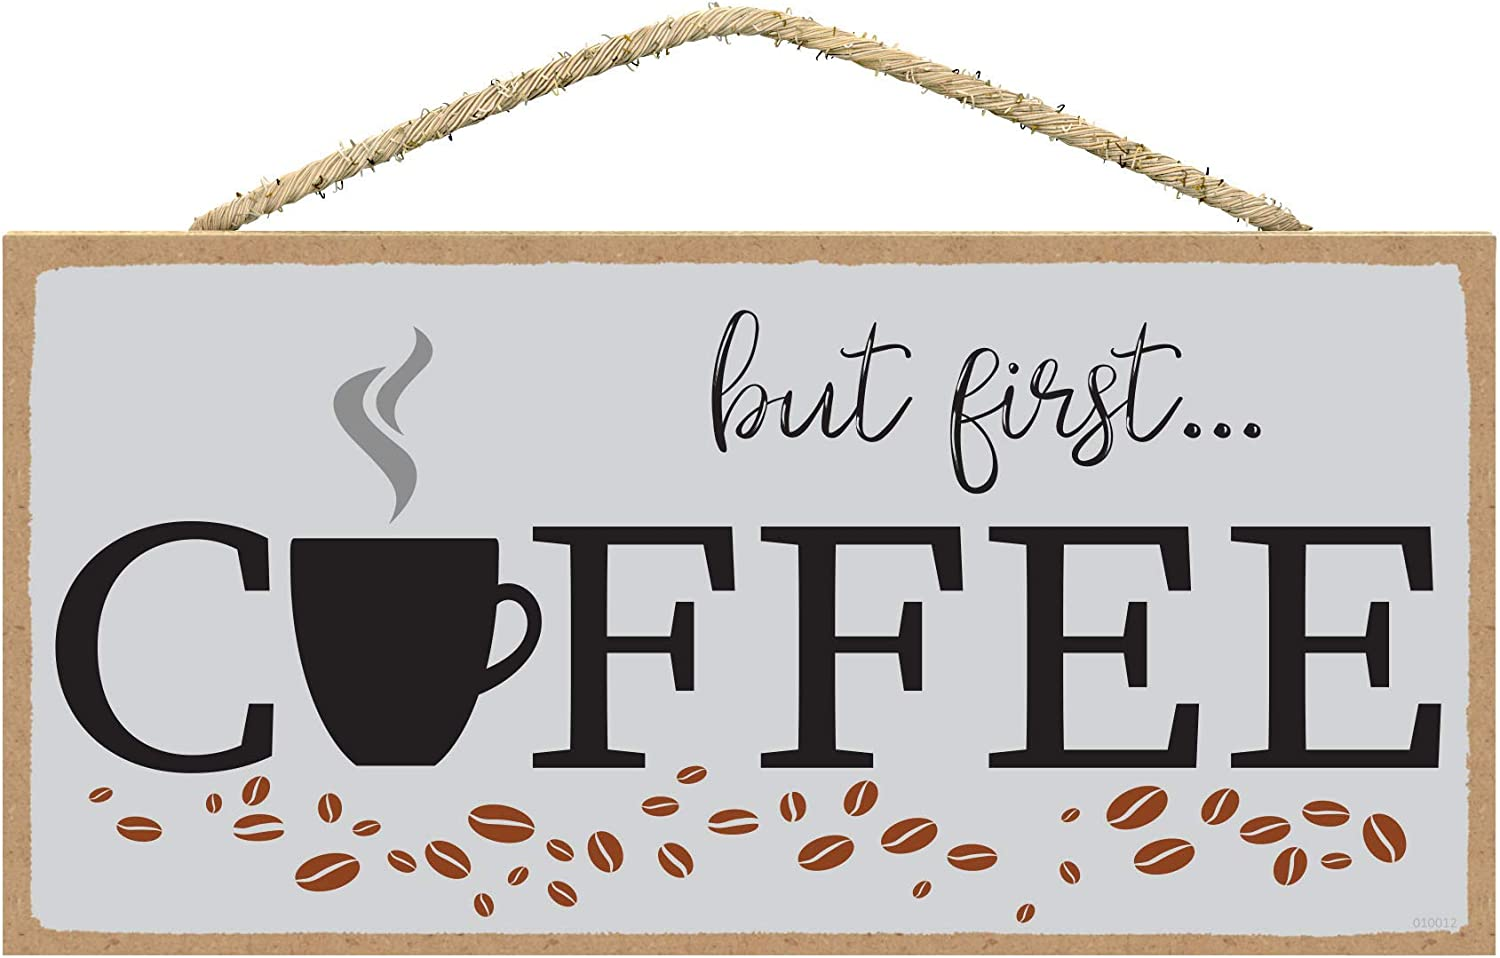 SarahJoy's Coffee Bar Sign - Coffee Wall Decor - But First Coffee Sign - Coffee Station Decor - Coffee Signs 5 x 10 inches (But First Coffee)